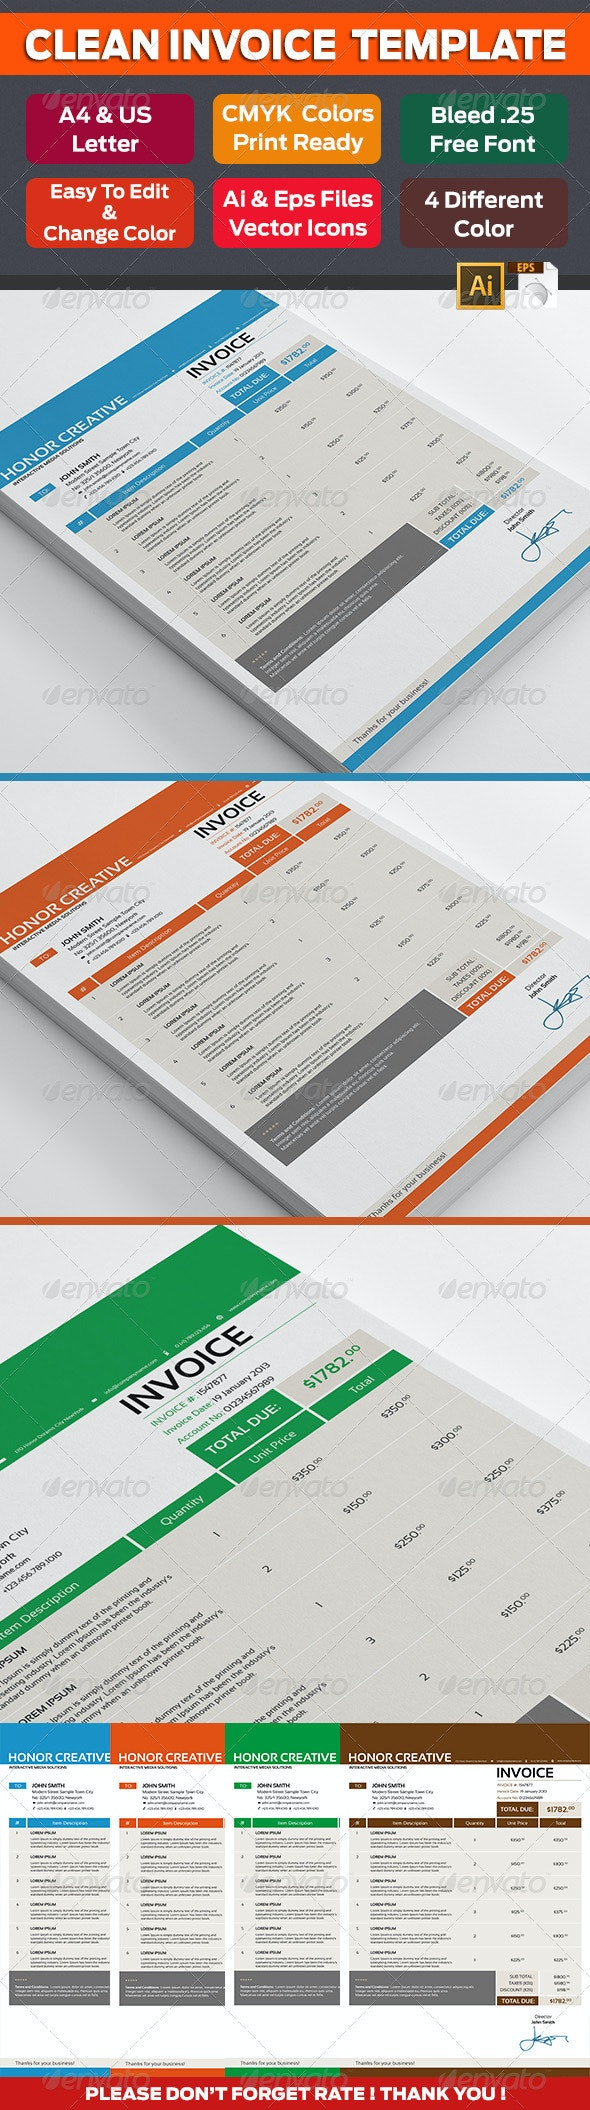 Professional Invoice 01 - Proposals & Invoices Stationery